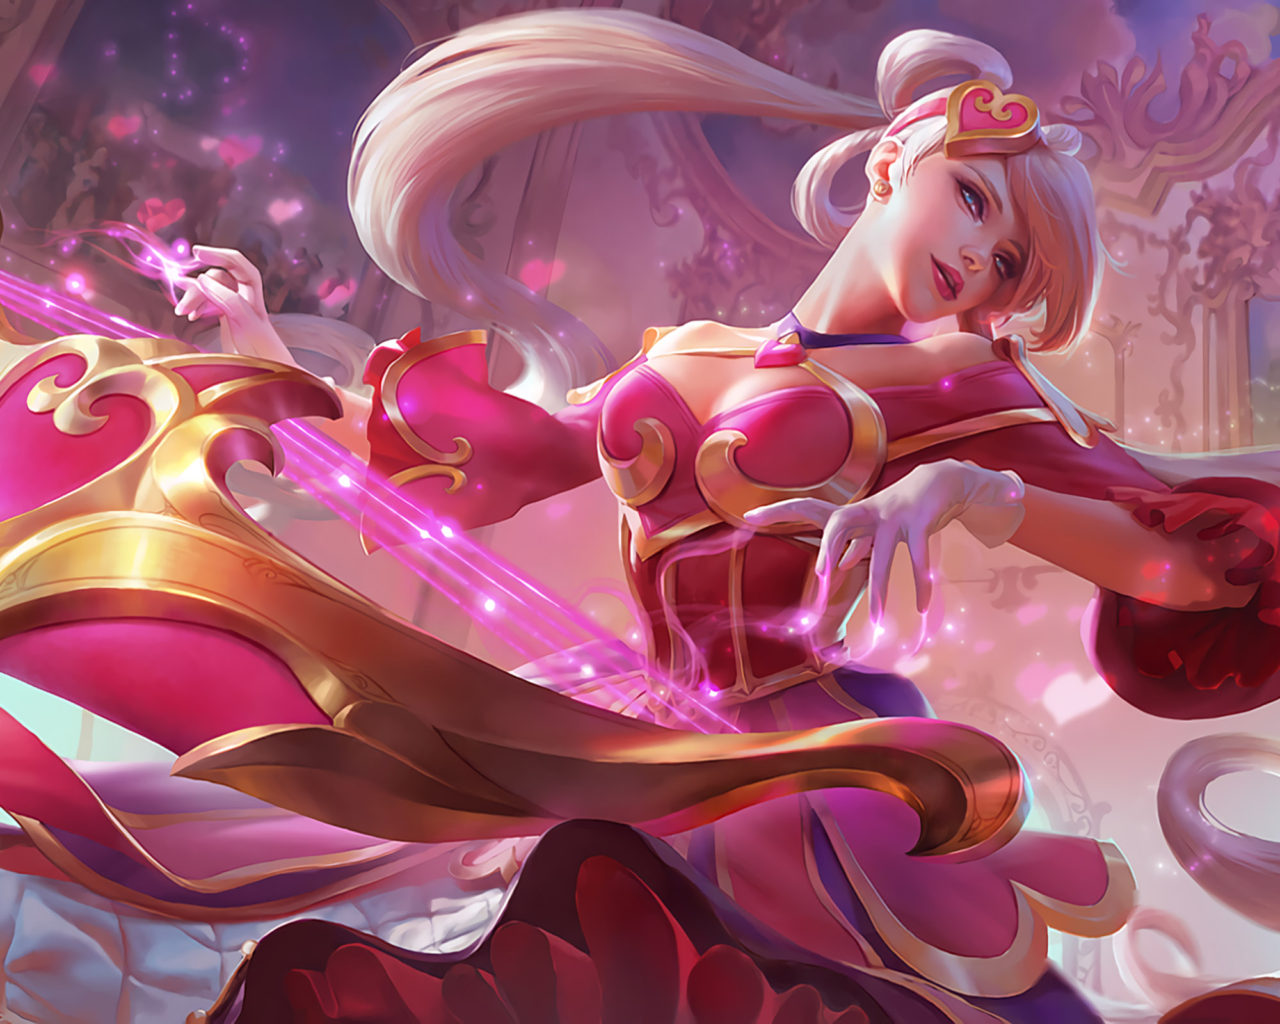 Animated New Year Wallpaper Video Game League Of Legends Sweetheart Sona Orianna